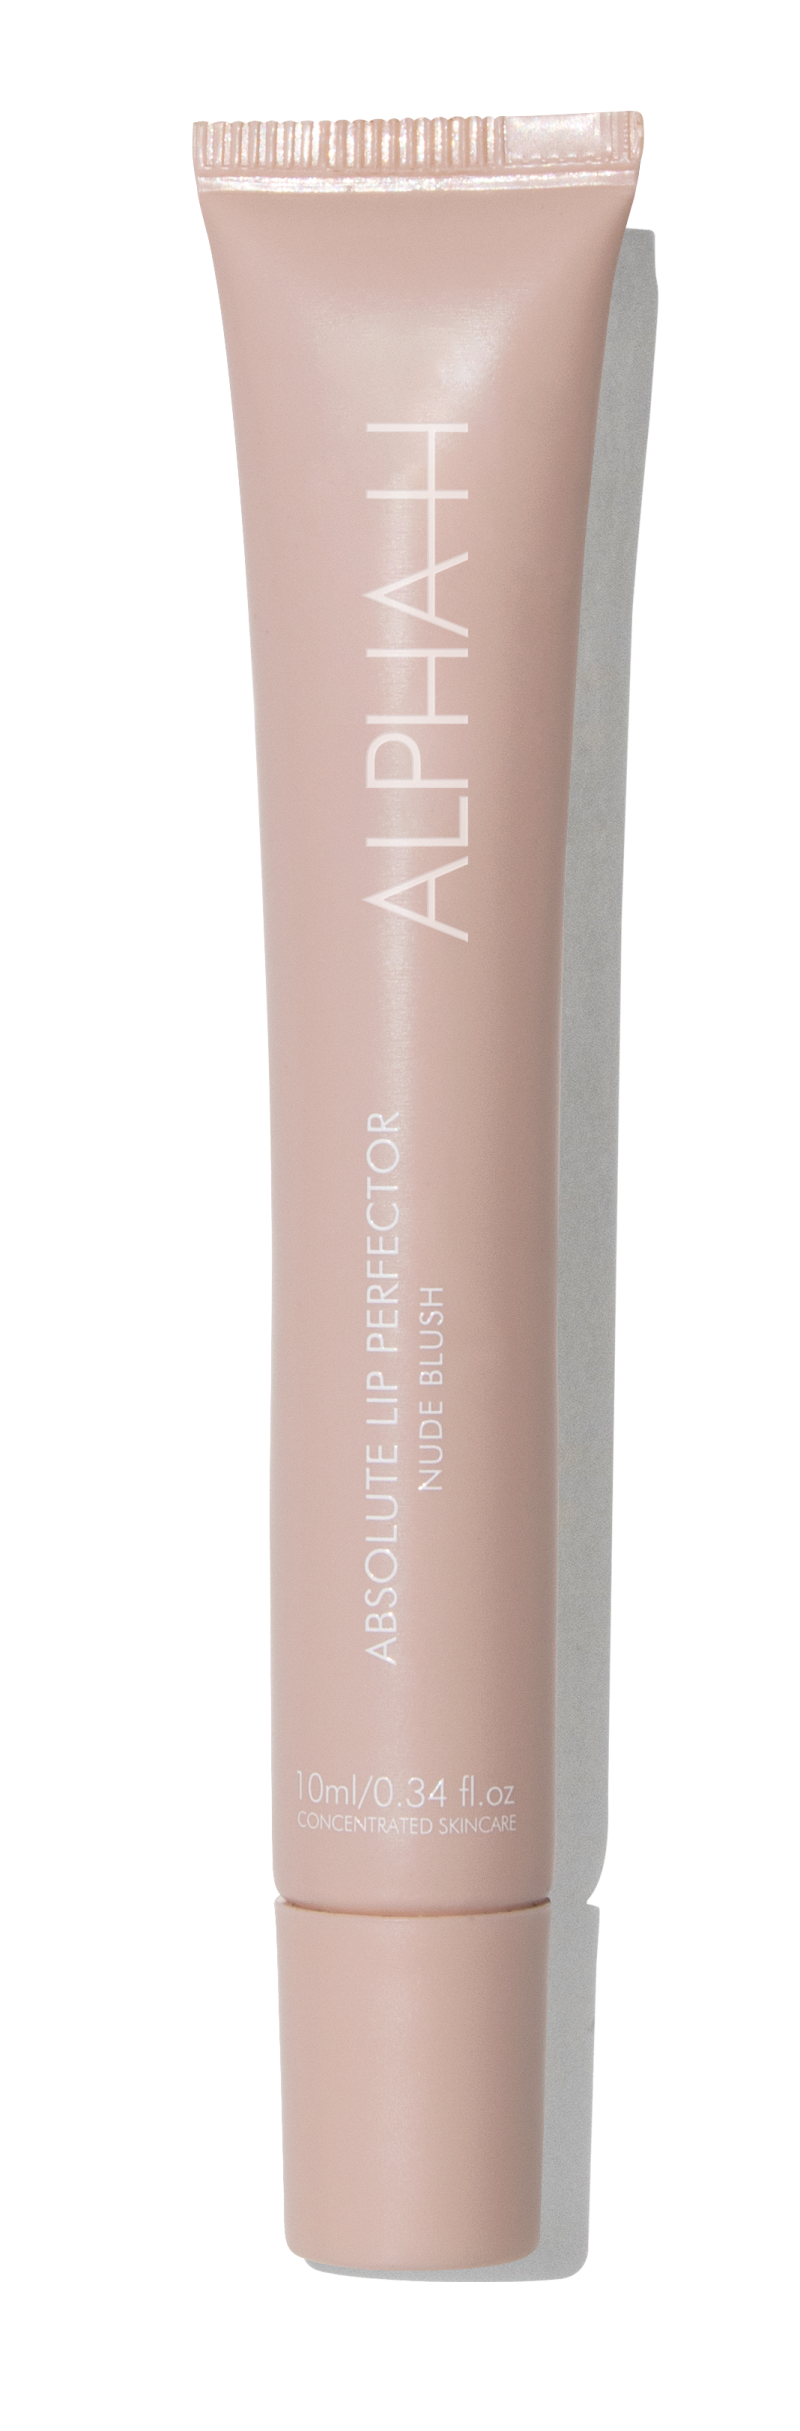 LIMITED EDITION - Absolute Lip Perfector Nude Blush